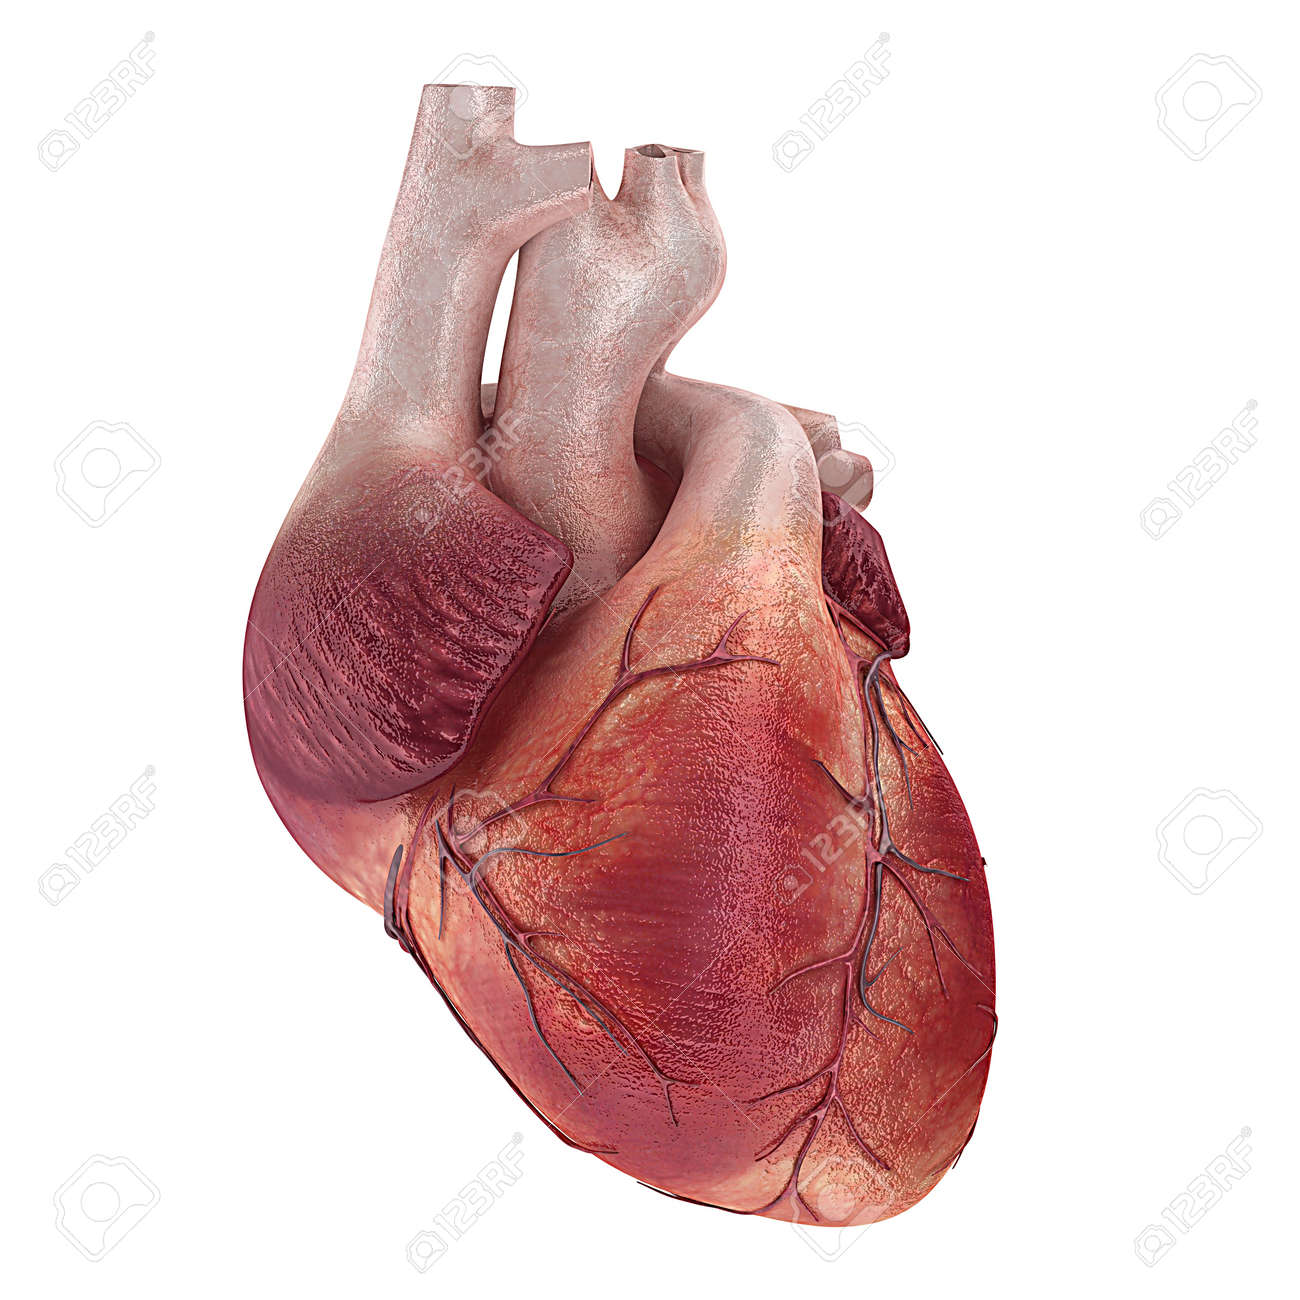 3d Rendered Medical Illustration Of A Human Heart Stock Photo ...